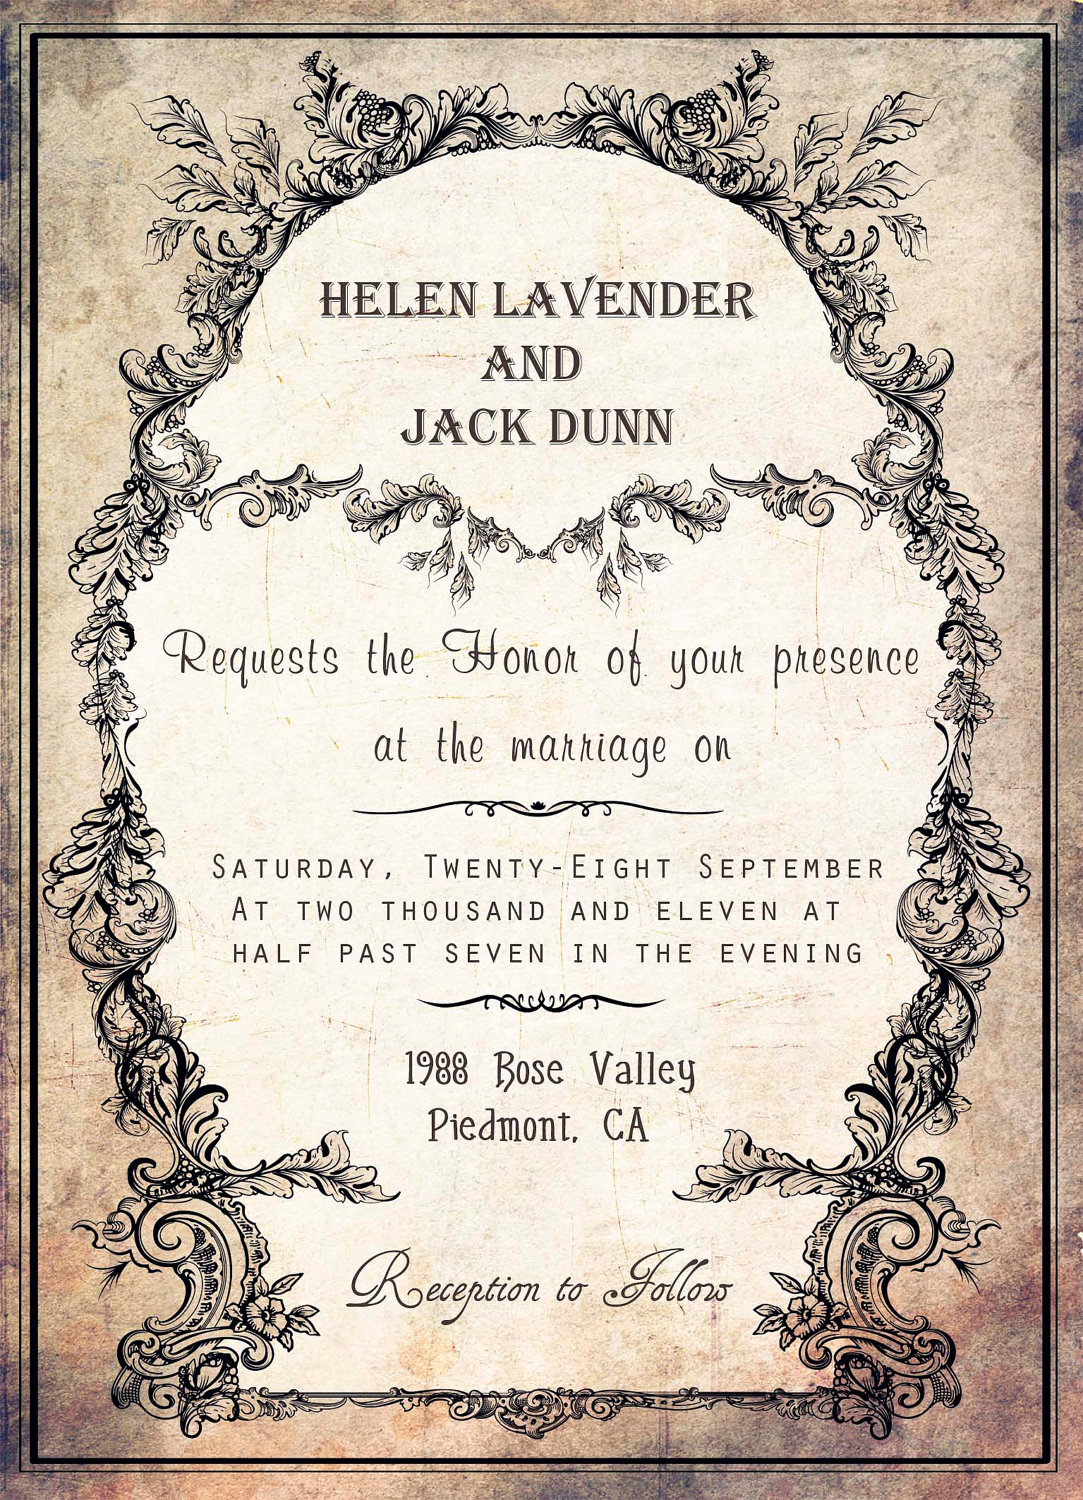 Wedding Invitation Template Peellandfmtk - Wedding invitation templates: wedding invitation card design template free download